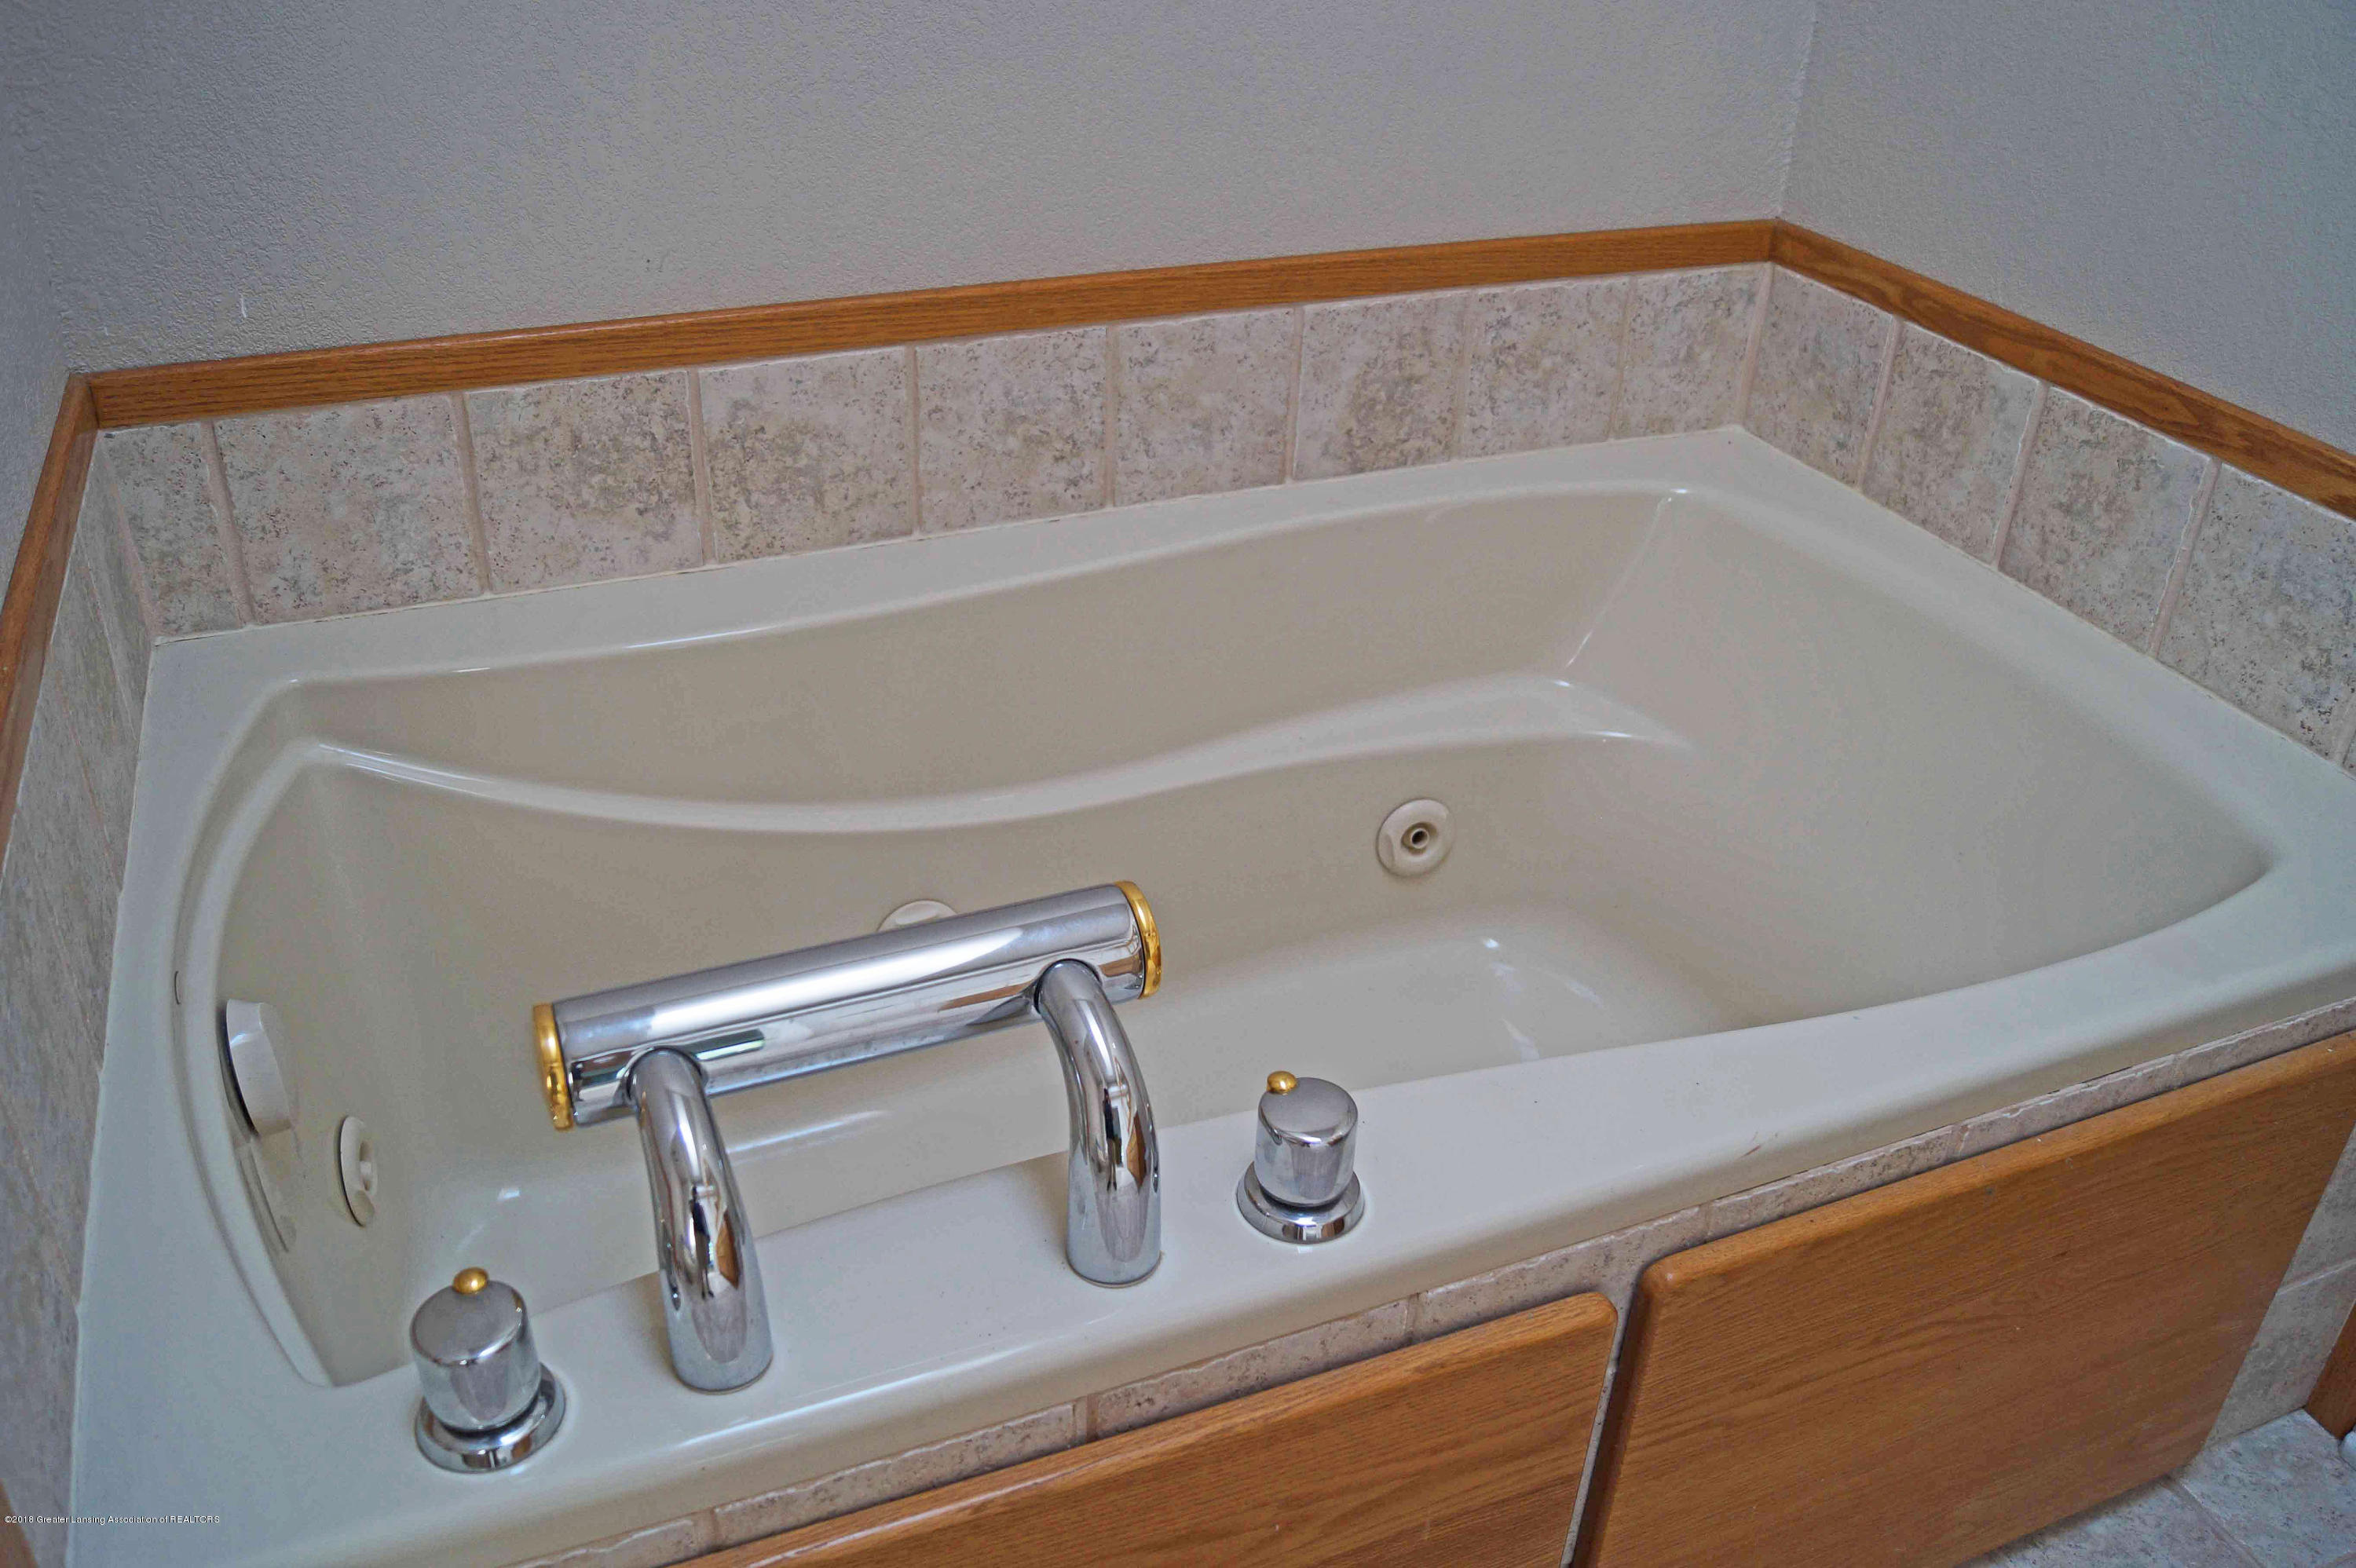 3720 Colby Rd - Whirlpool Tub - 17